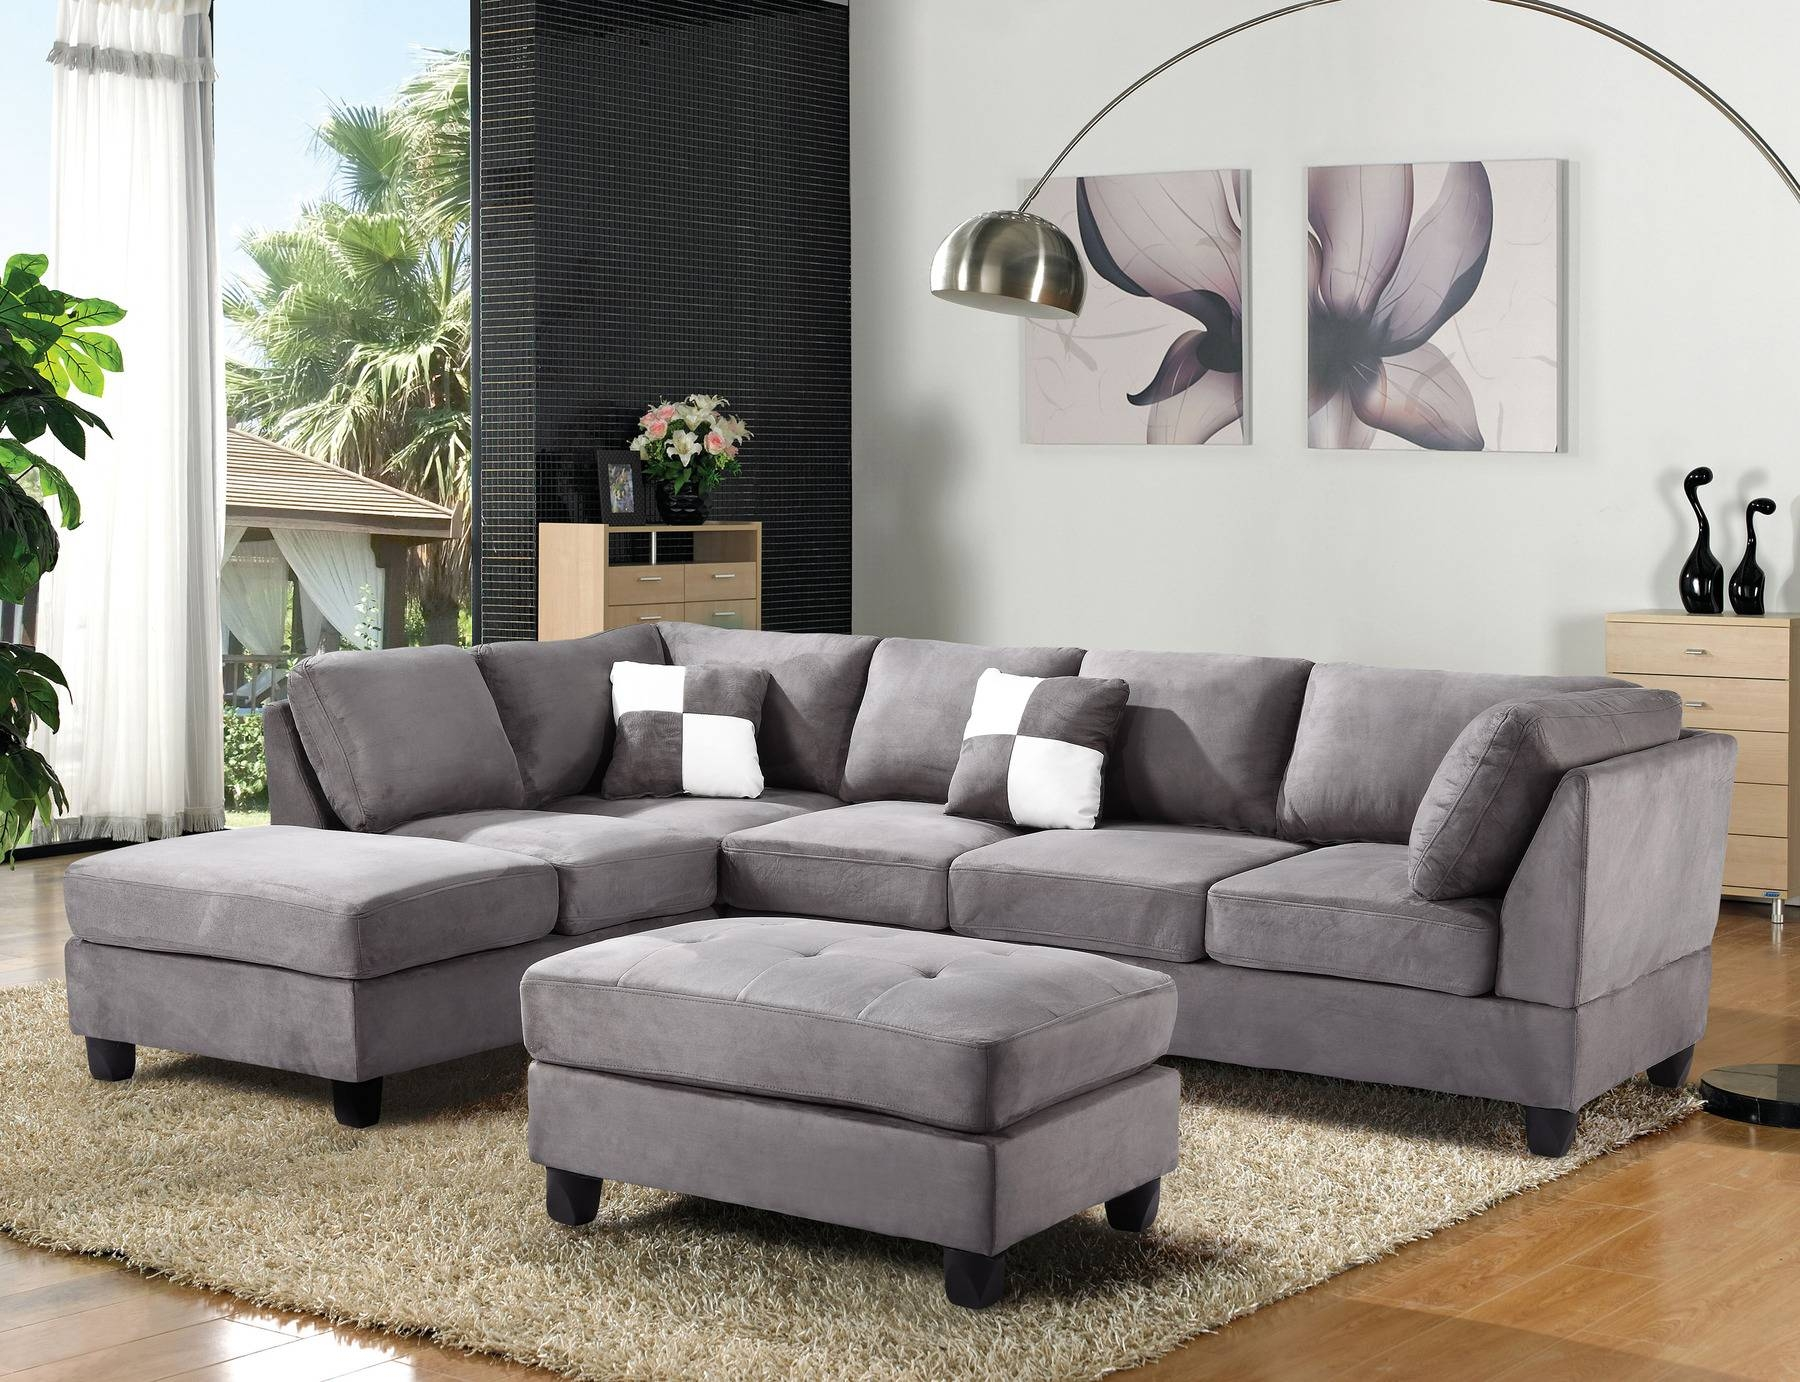 Gl633 Lf Sectional Sofa G633B Glory Furniture Sectional Sofas At within Microfiber Sectional Sofas (Image 12 of 15)